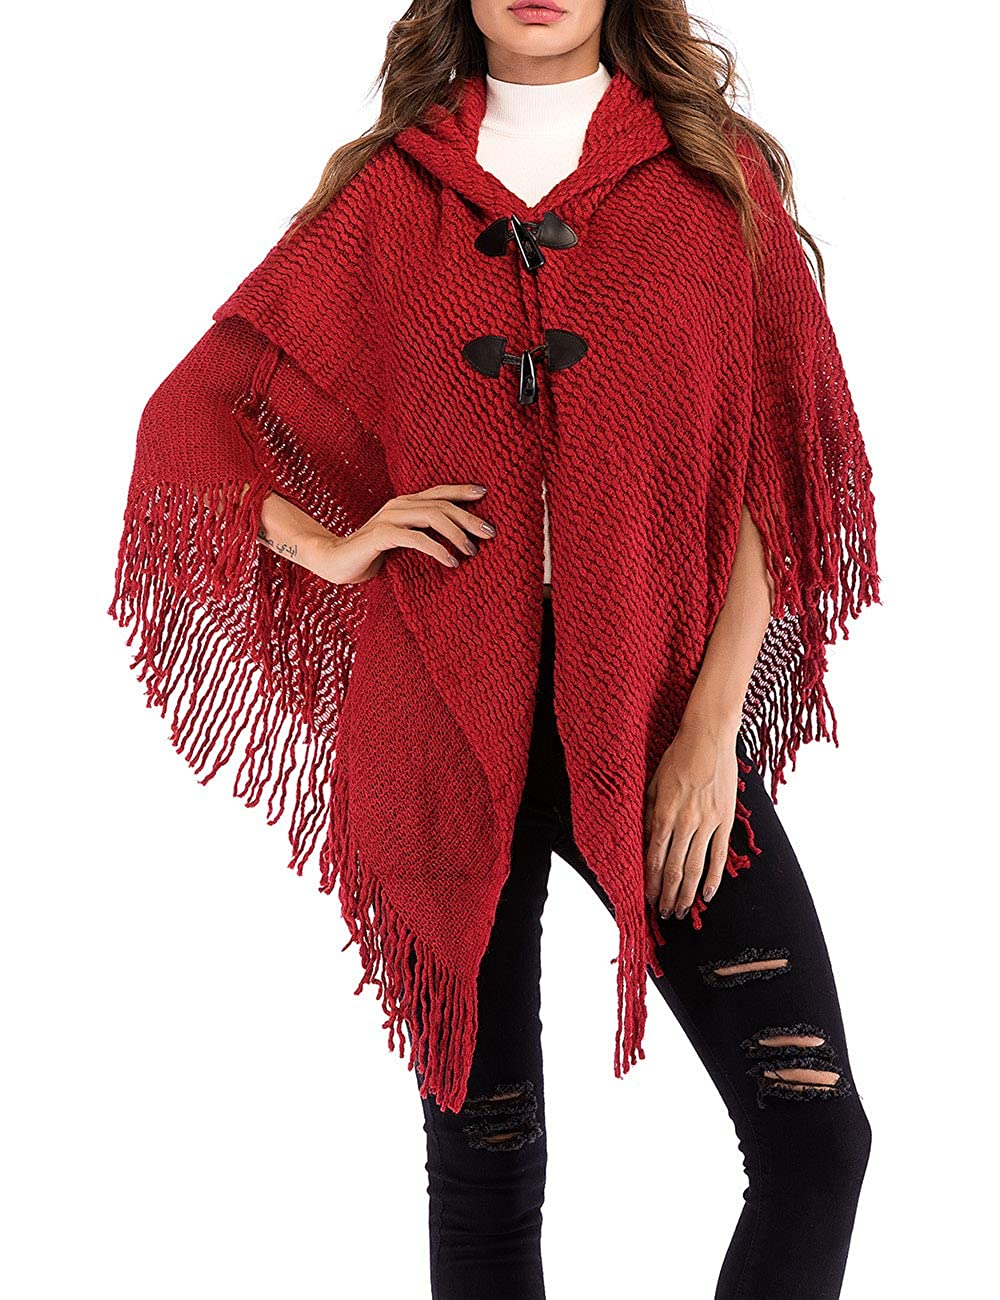 XXXITICAT Women's Hooded Sweater Tassel Knit Poncho Cloak Shawl Capes